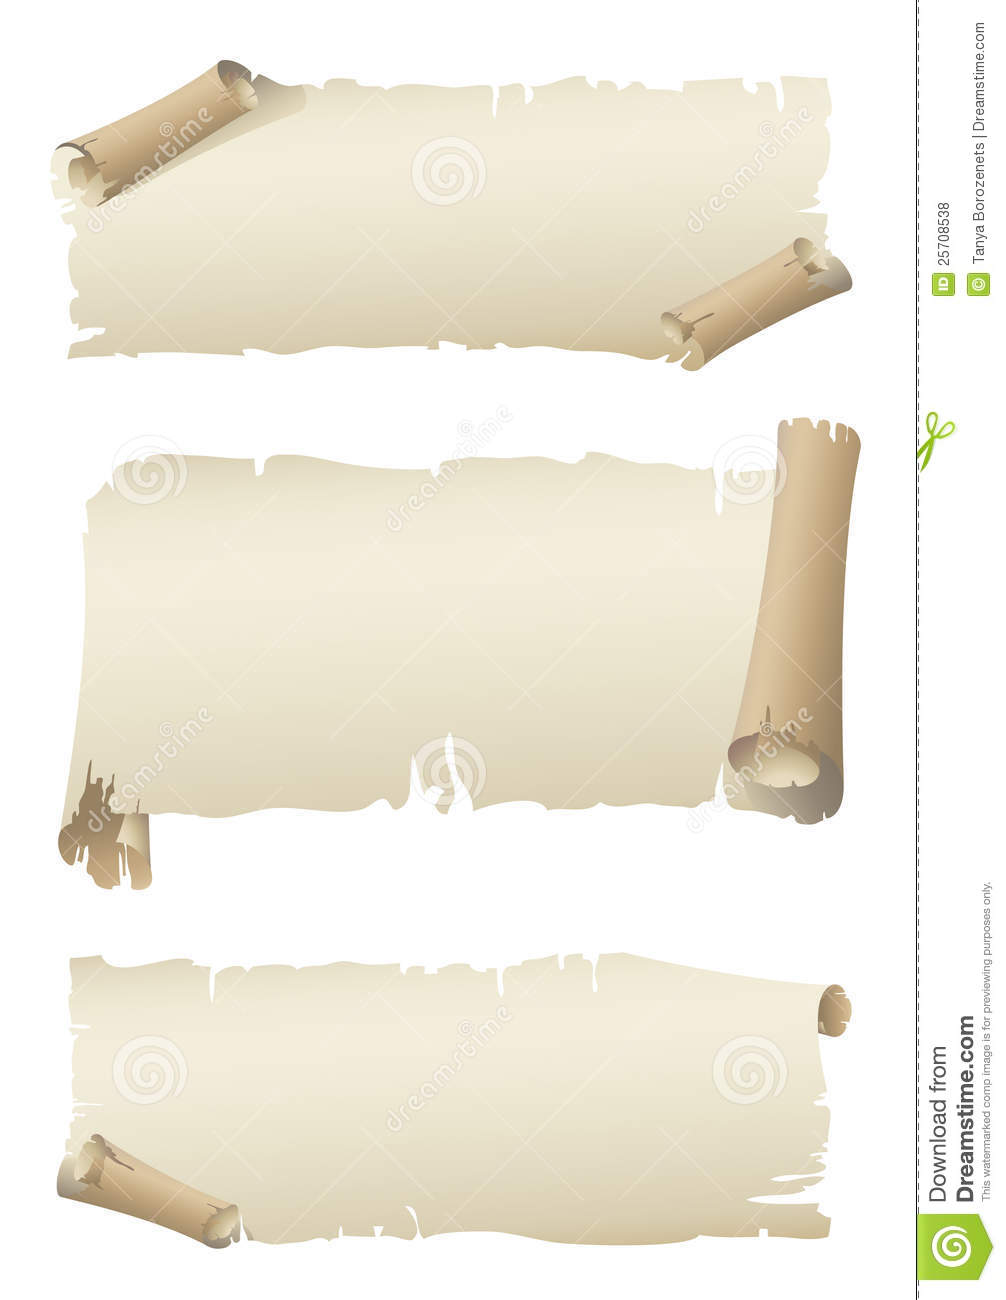 Scroll Old Paper Banners Royalty Free Stock Photos - Image: 25708538